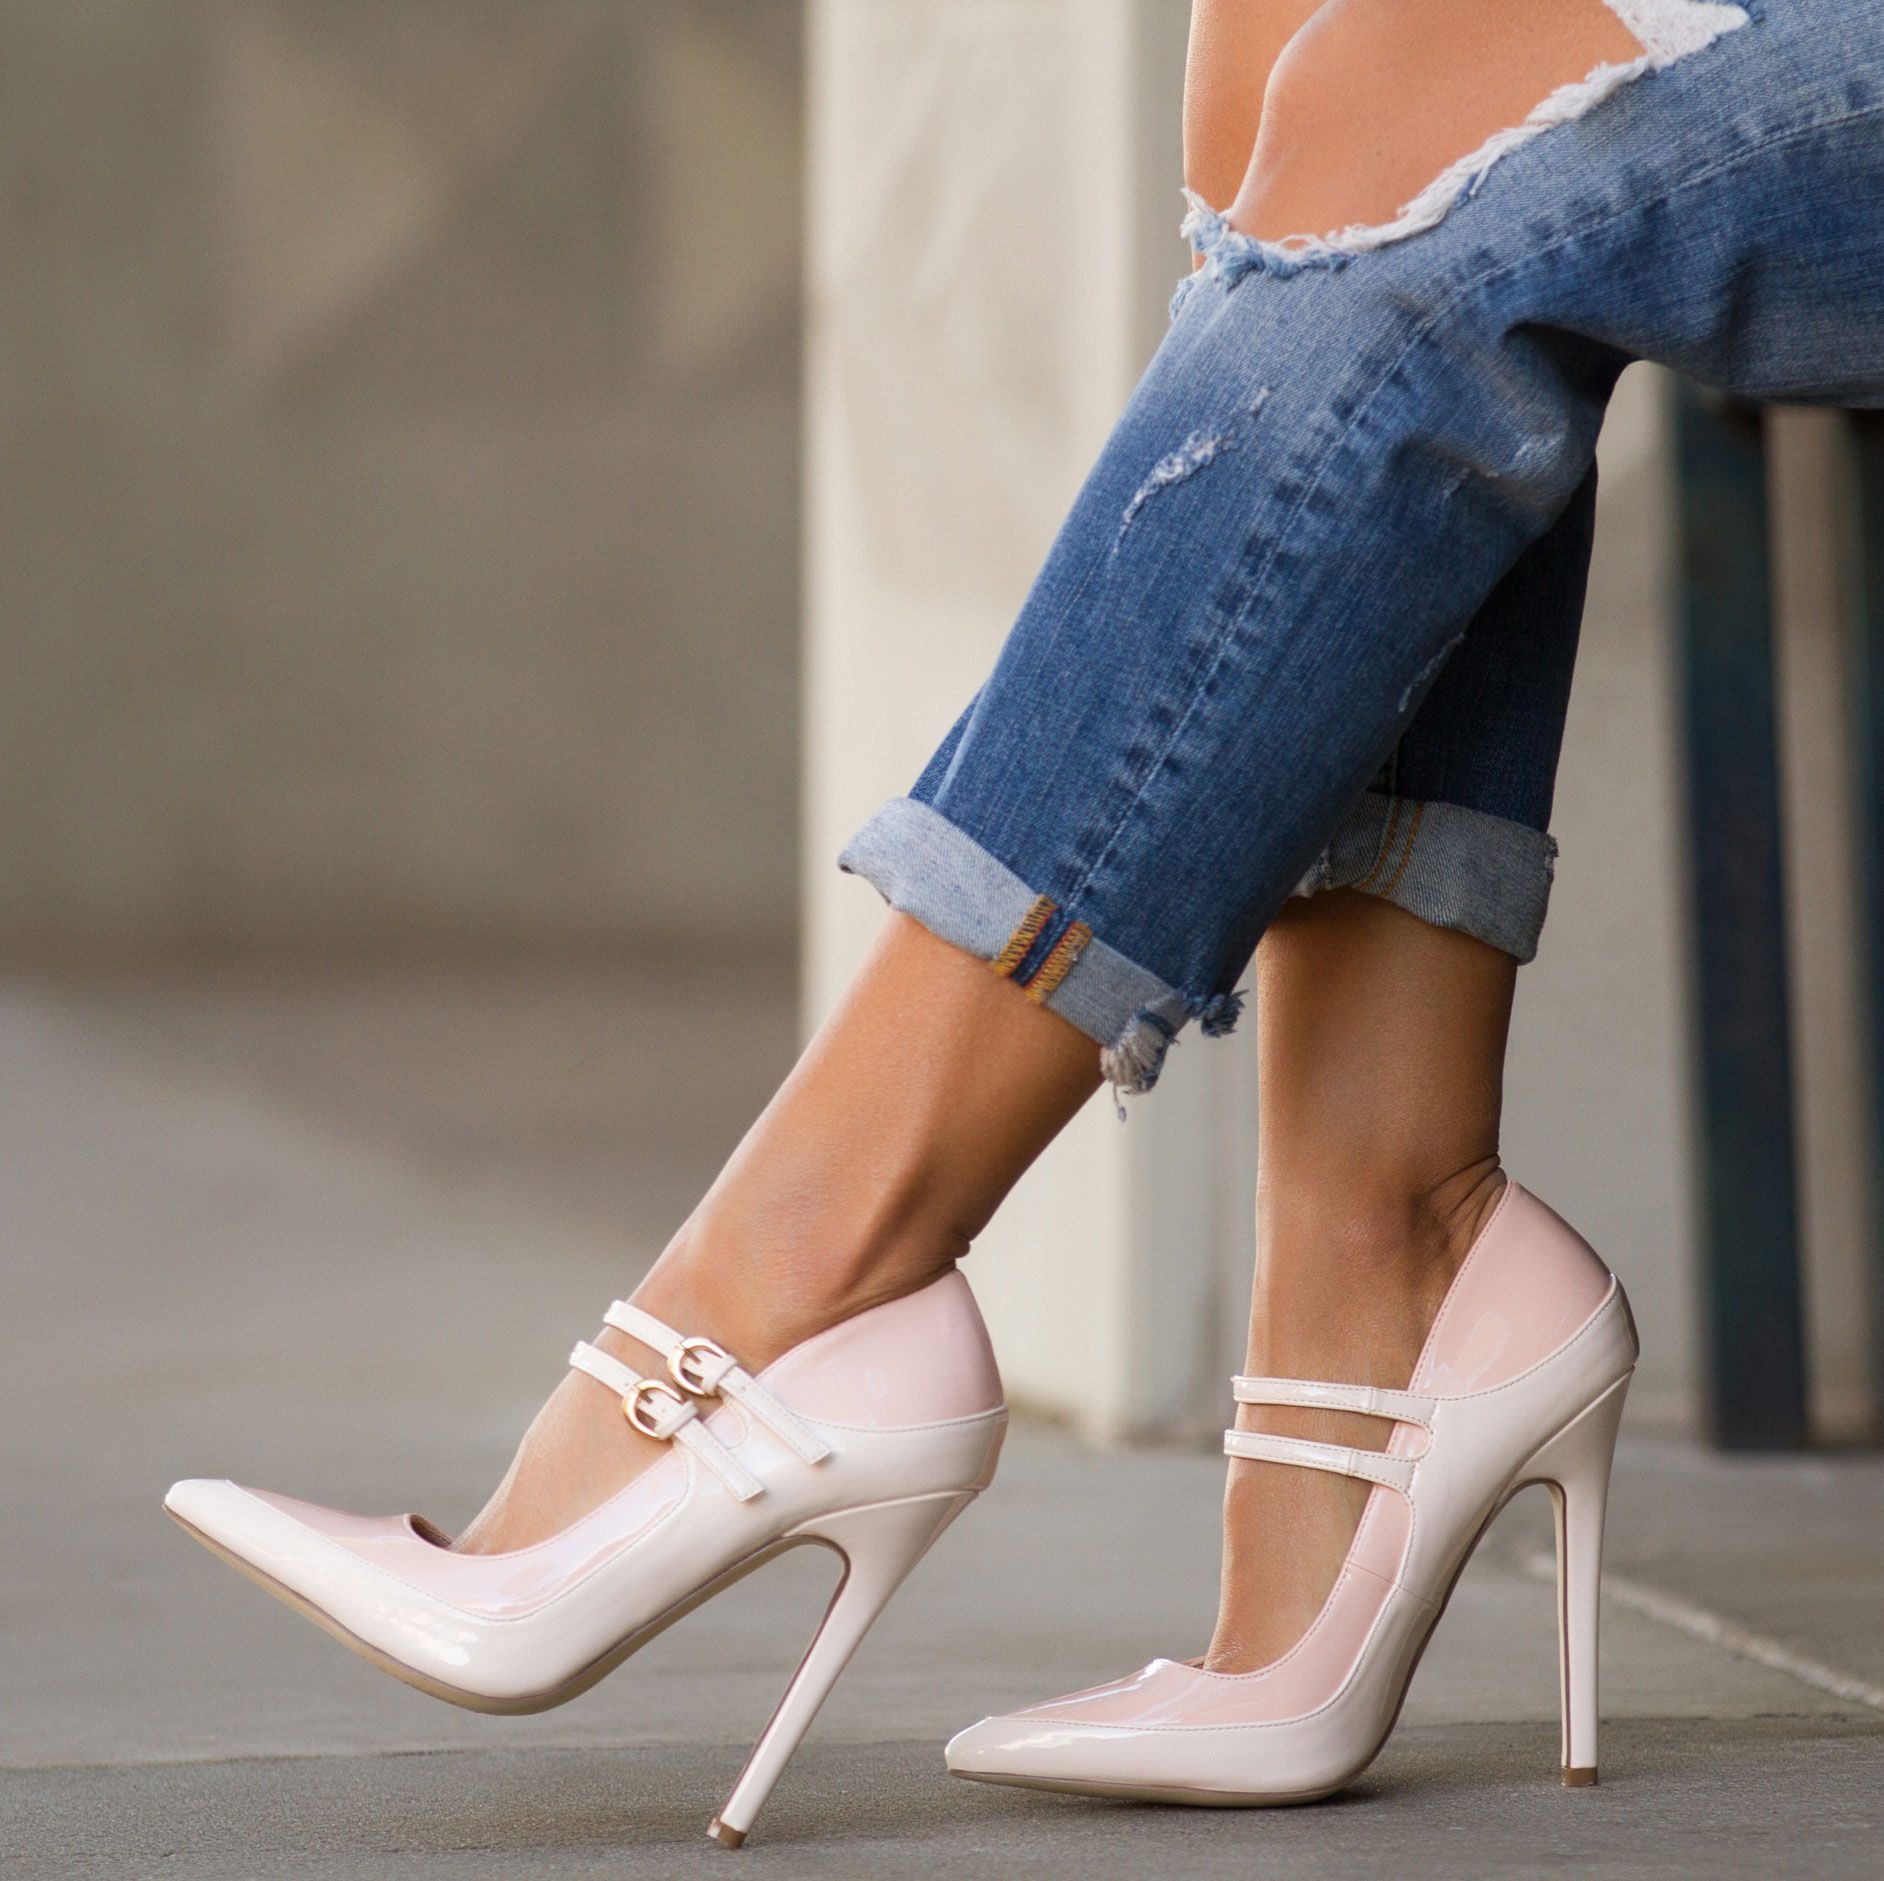 5570706495d1 Two-Toned Pink And White High Heeled Pumps Pictures